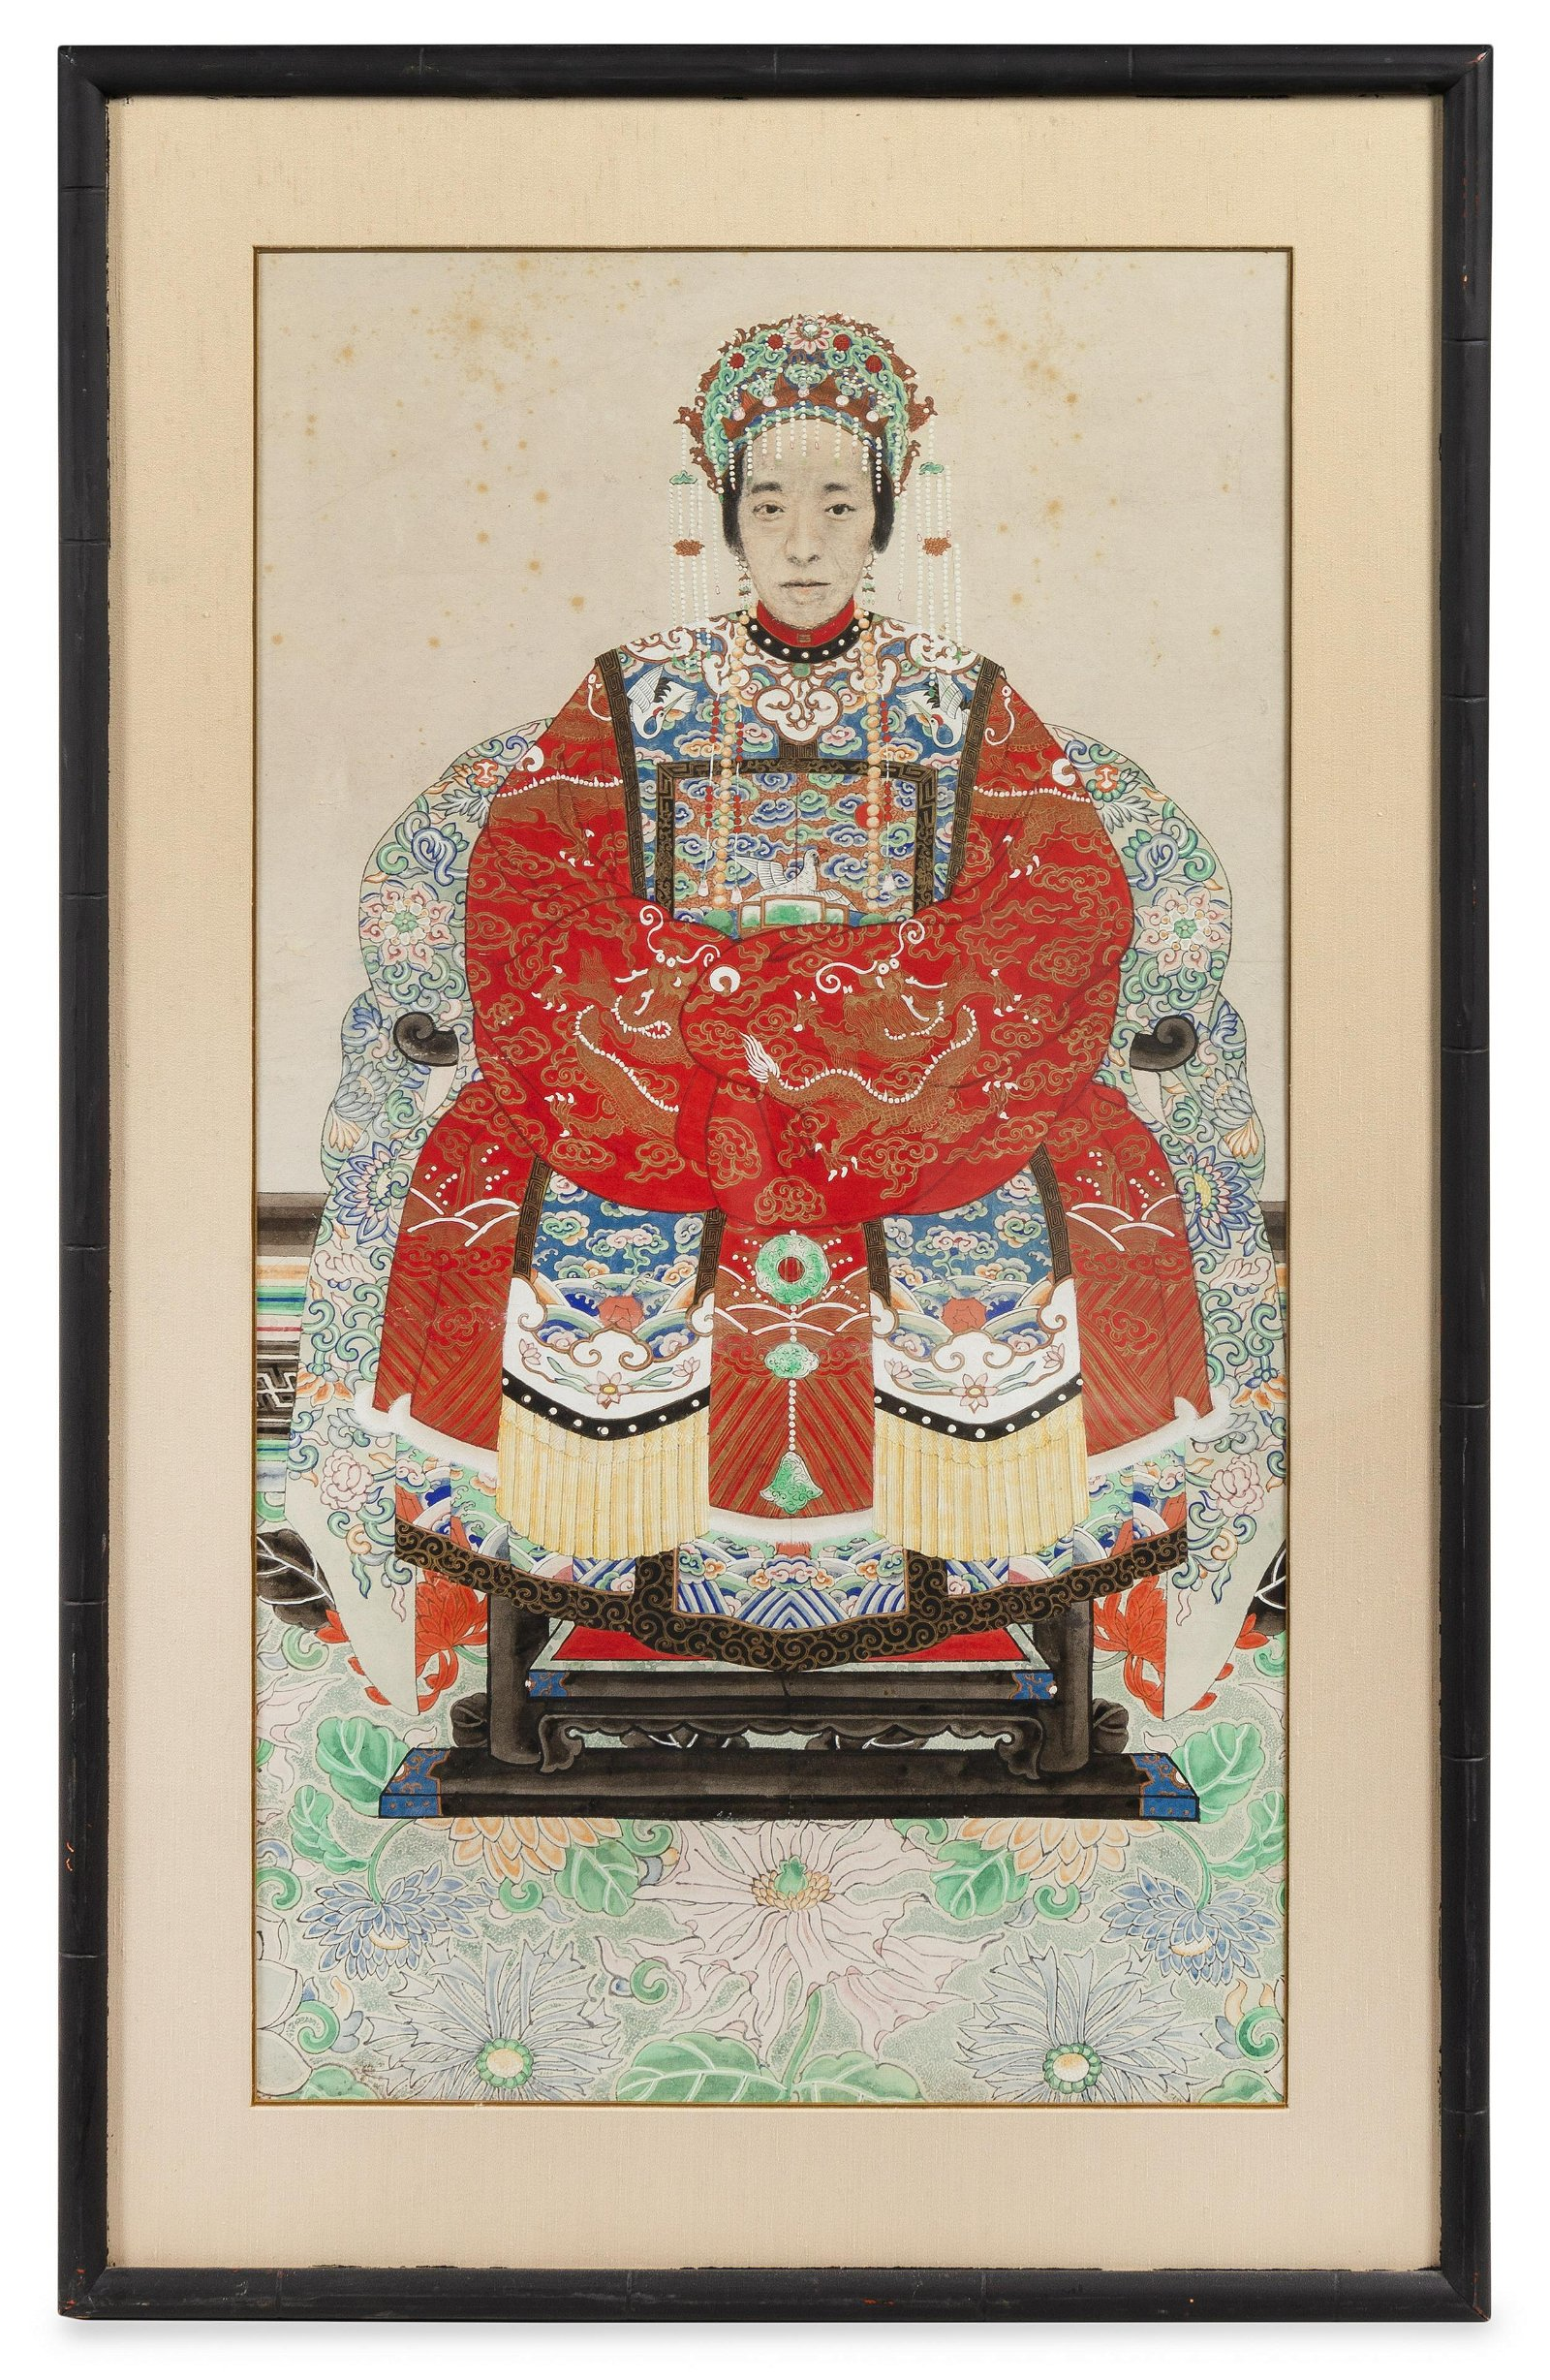 A Chinese Ancestral Portrait